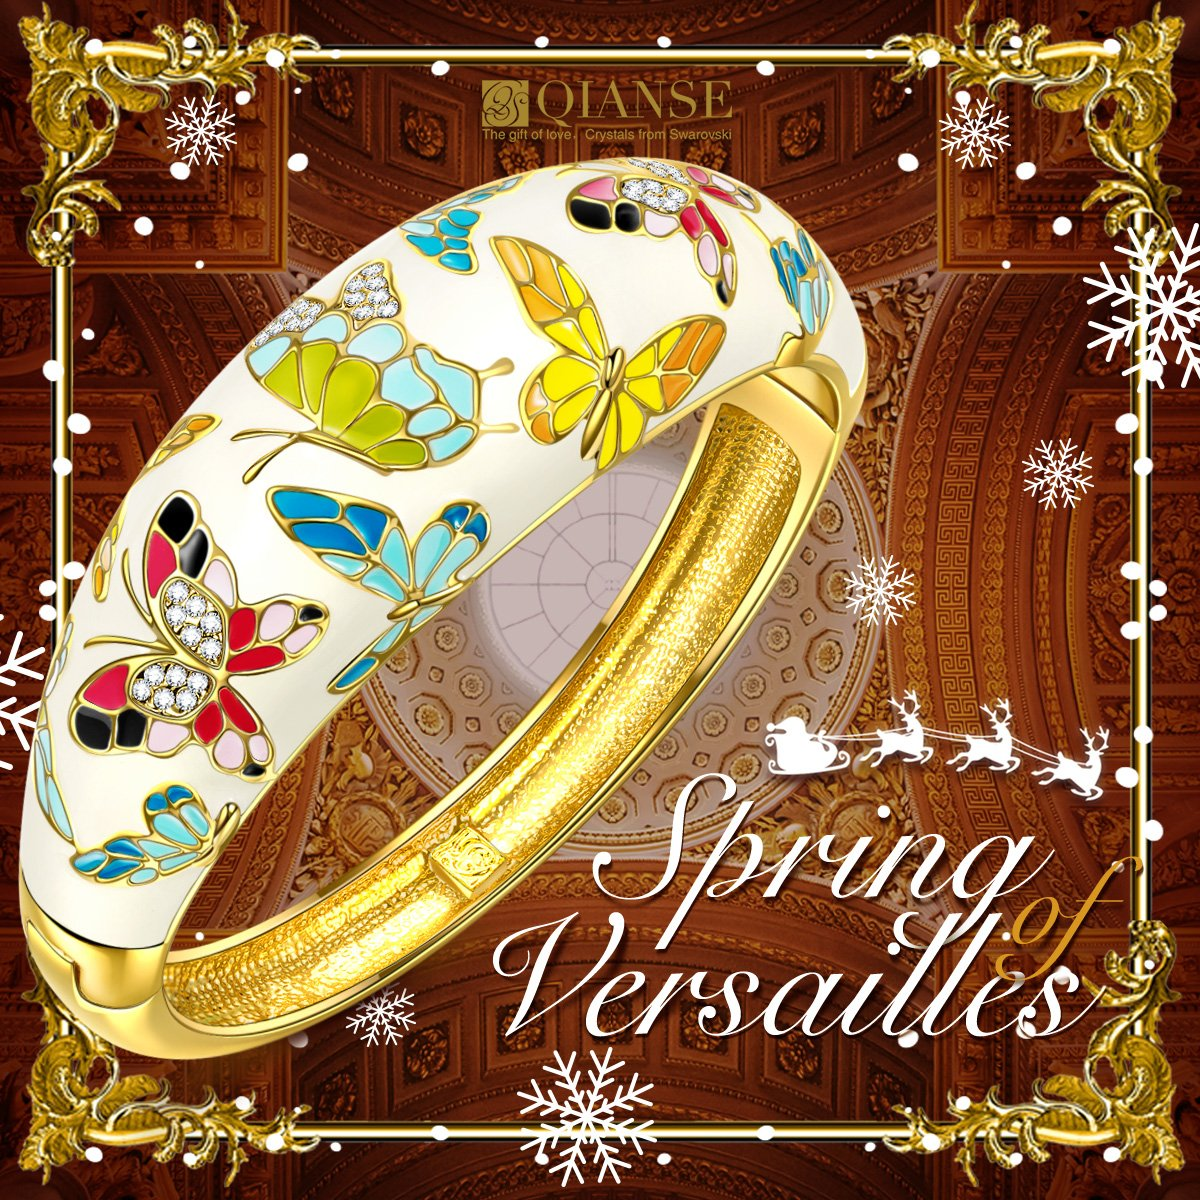 QIANSE Spring of Versailles Yellow Gold Bangle Bracelets Enamel Butterfly Bangles for Women Jewelry for Women Birthday Gifts for Mom Girlfriend Daughter Grandma Mother in Law Present by QIANSE (Image #5)